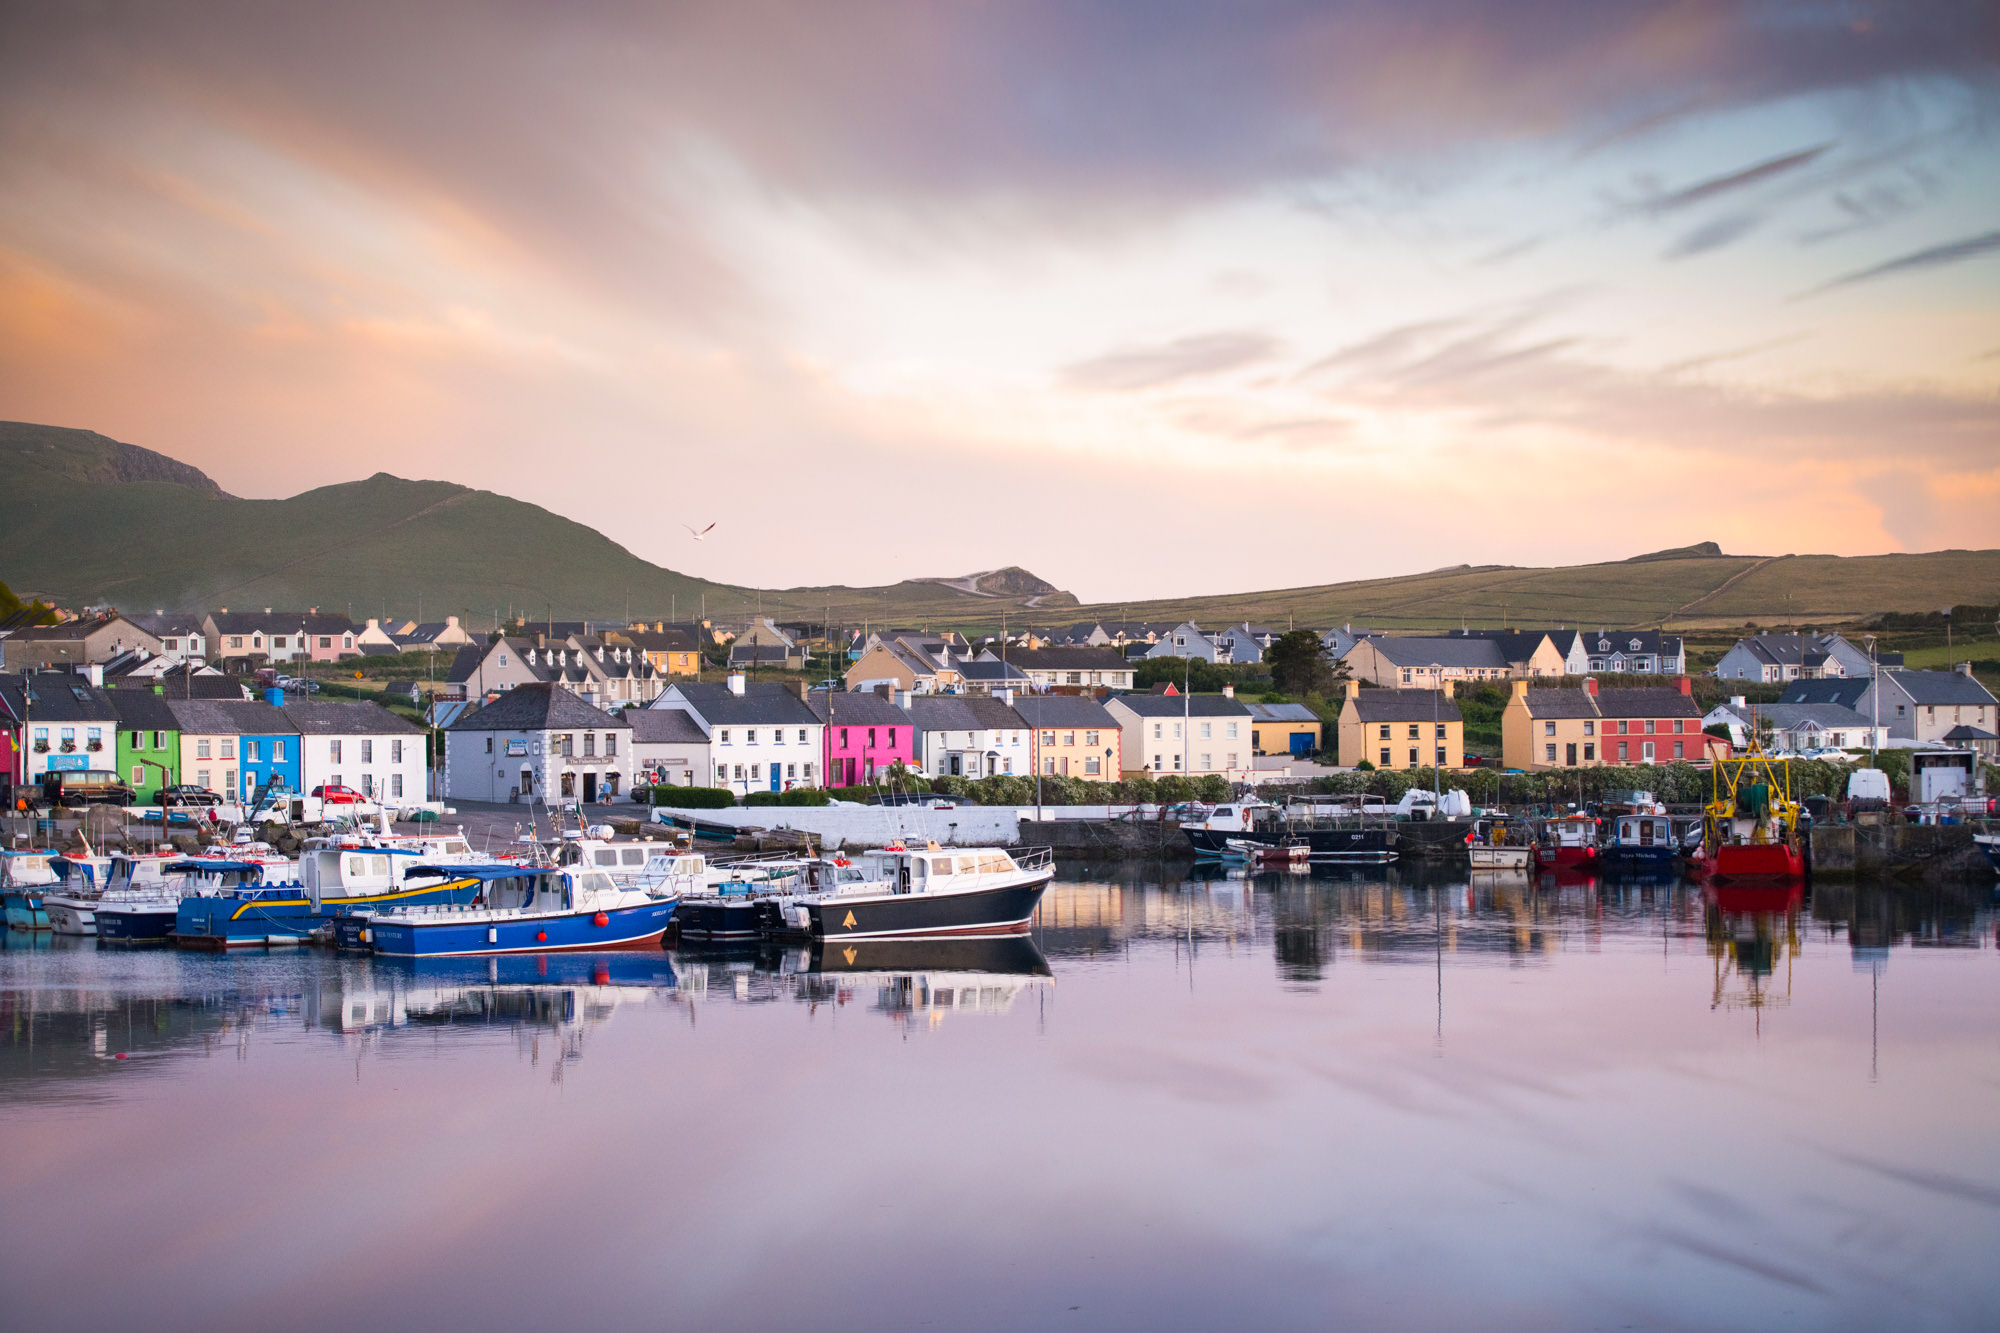 Sunset in a beautiful village in Ireland with brightly coloured houses